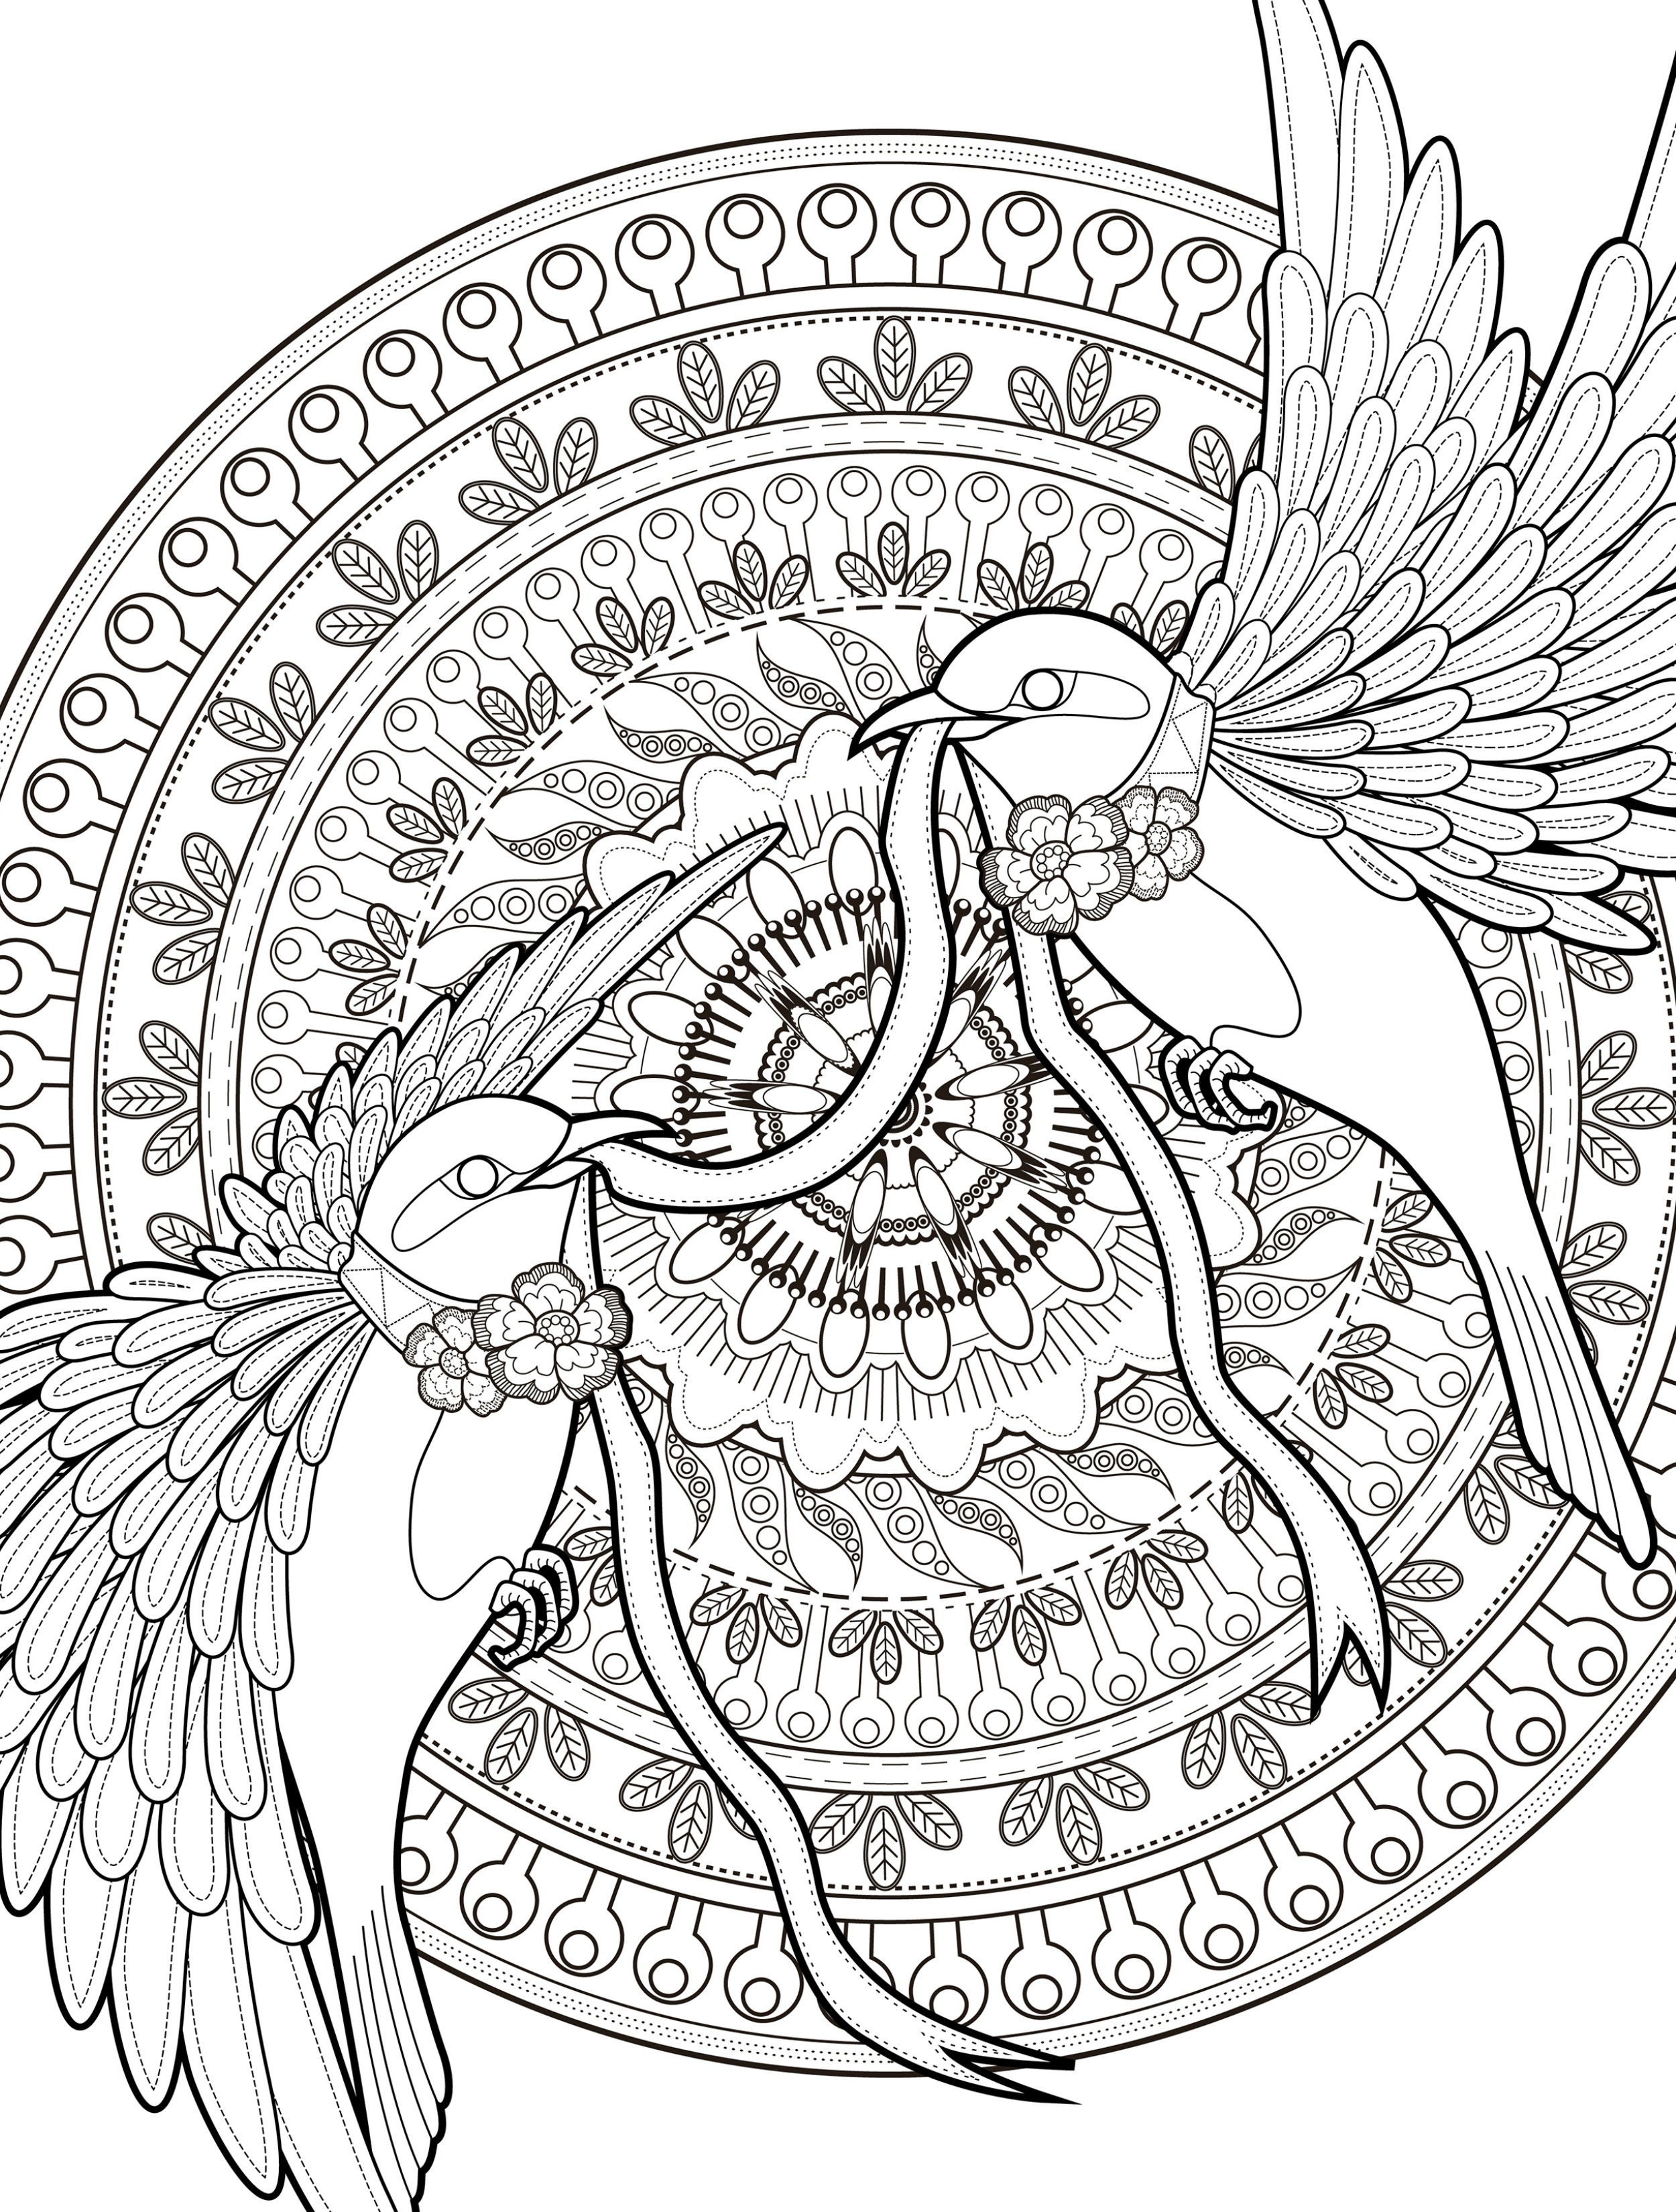 downloadable coloring pages - able free coloring pages